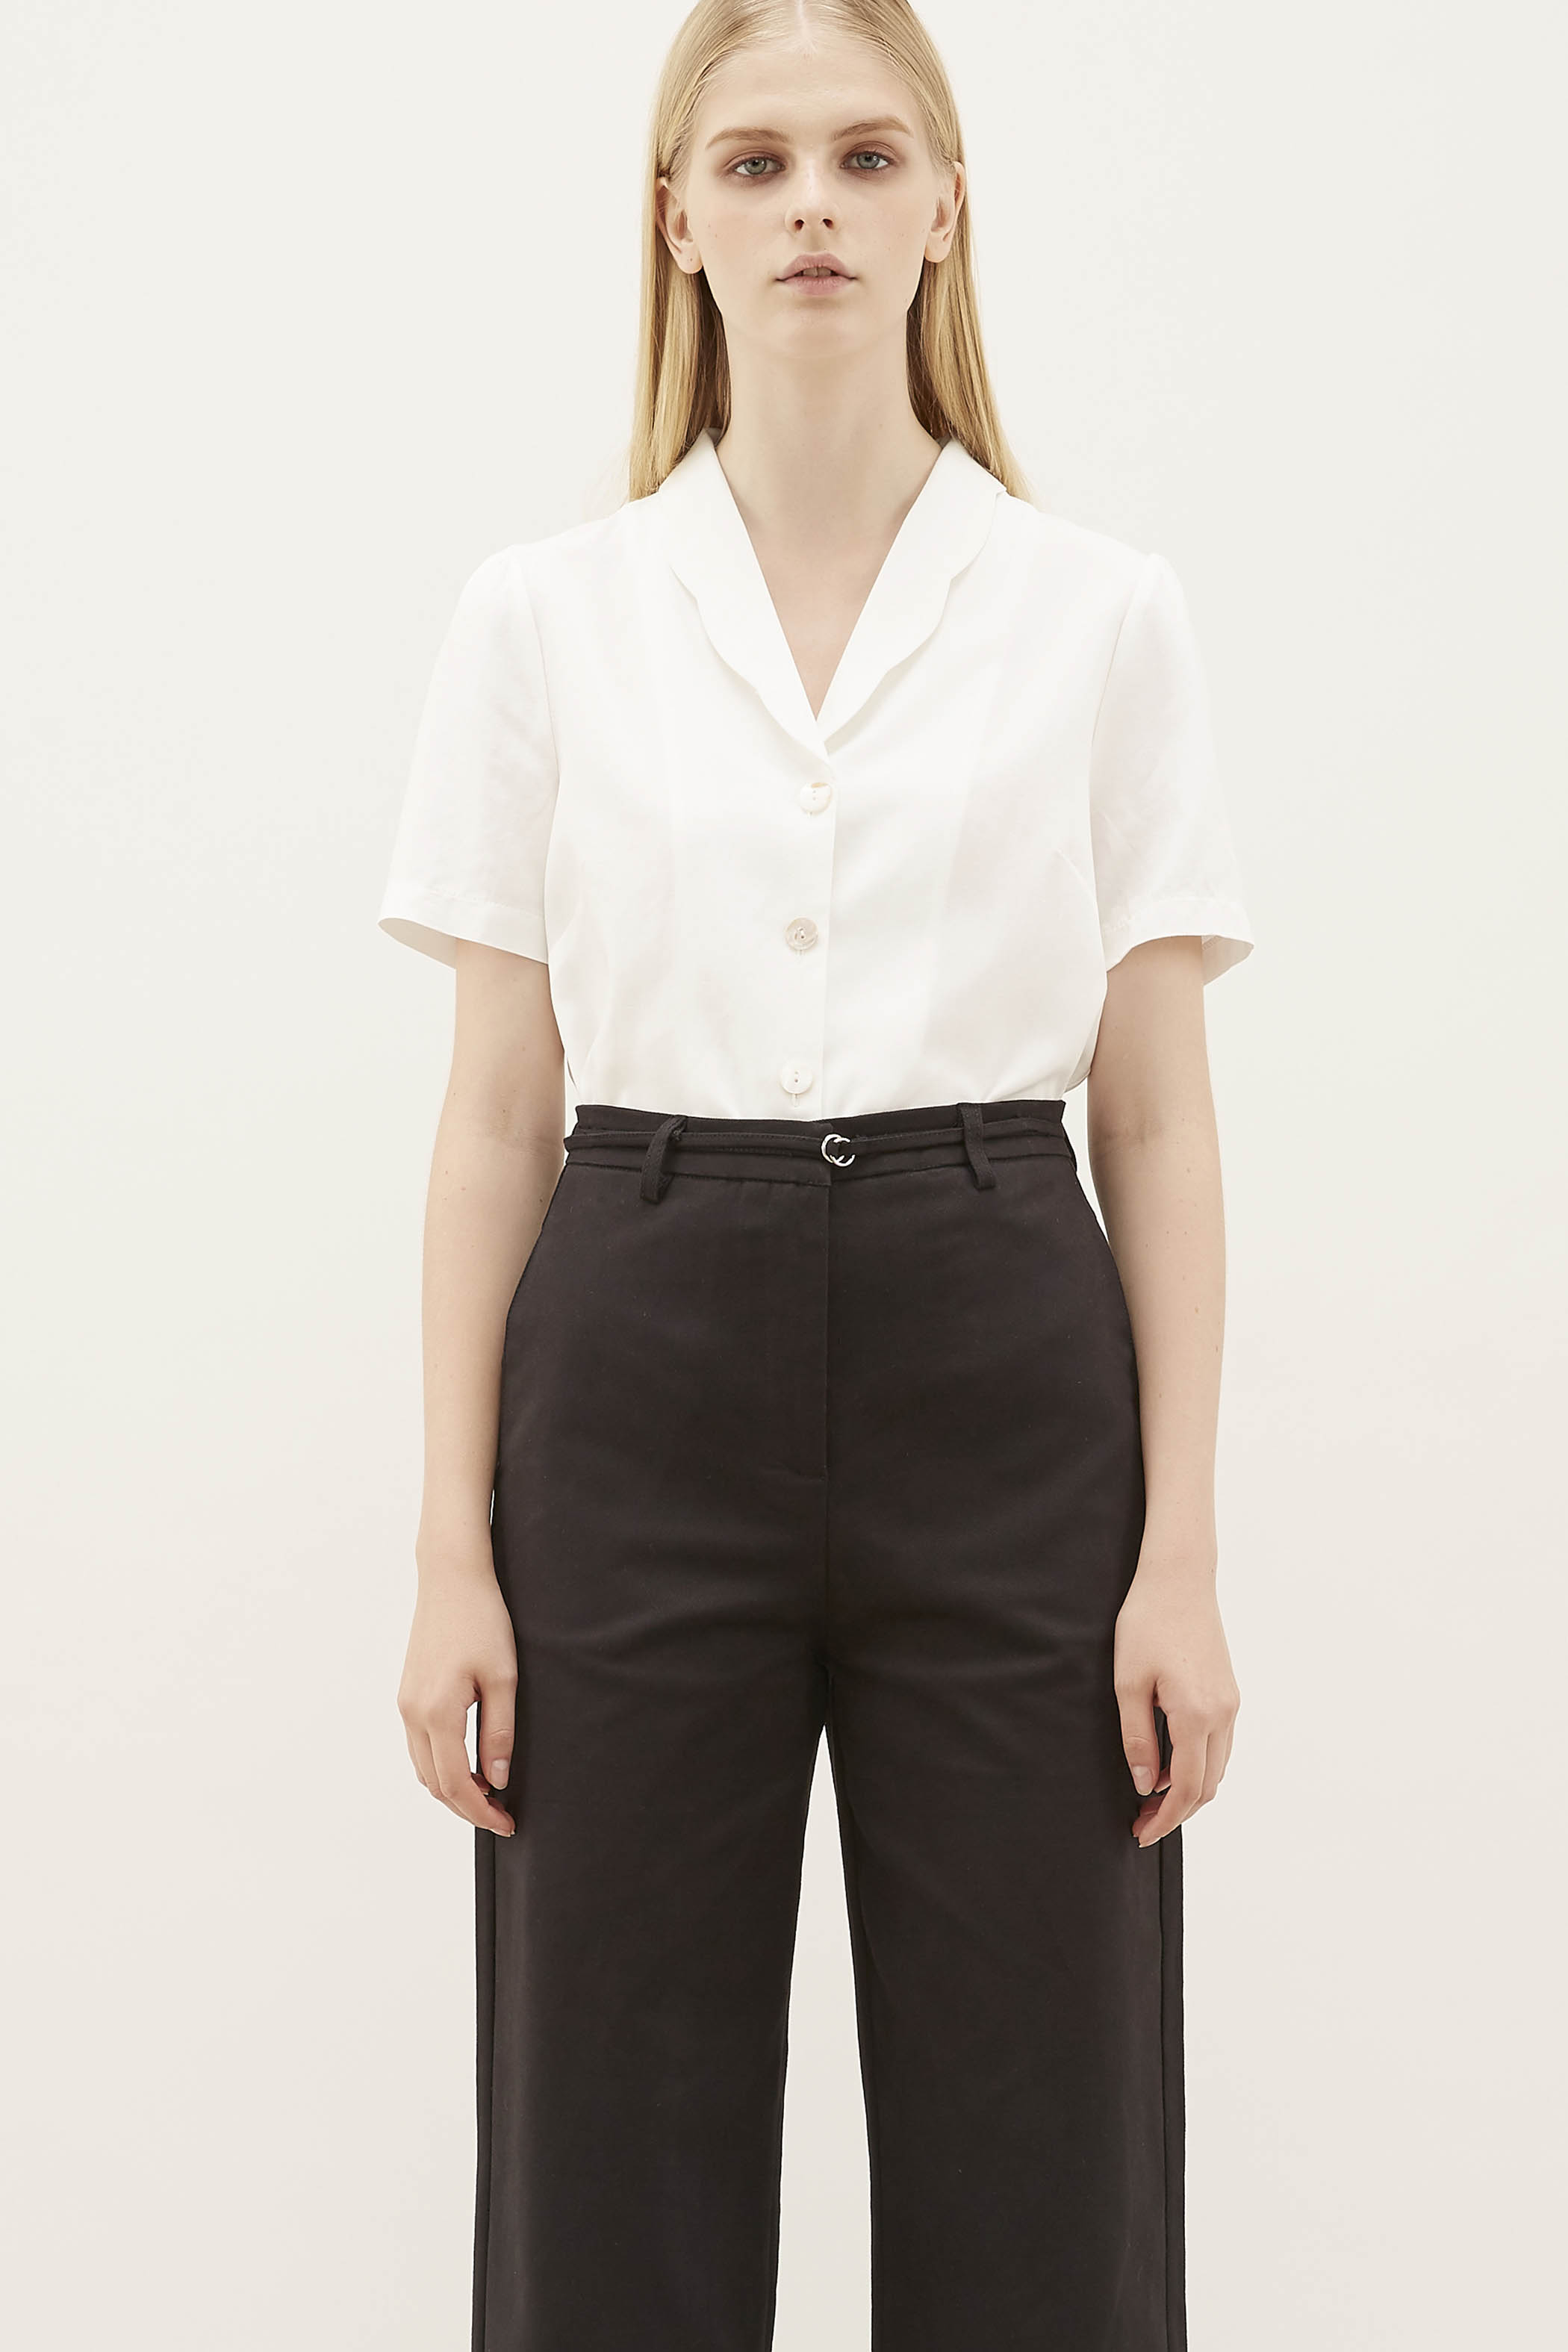 Chrissa Scallop-collar Blouse